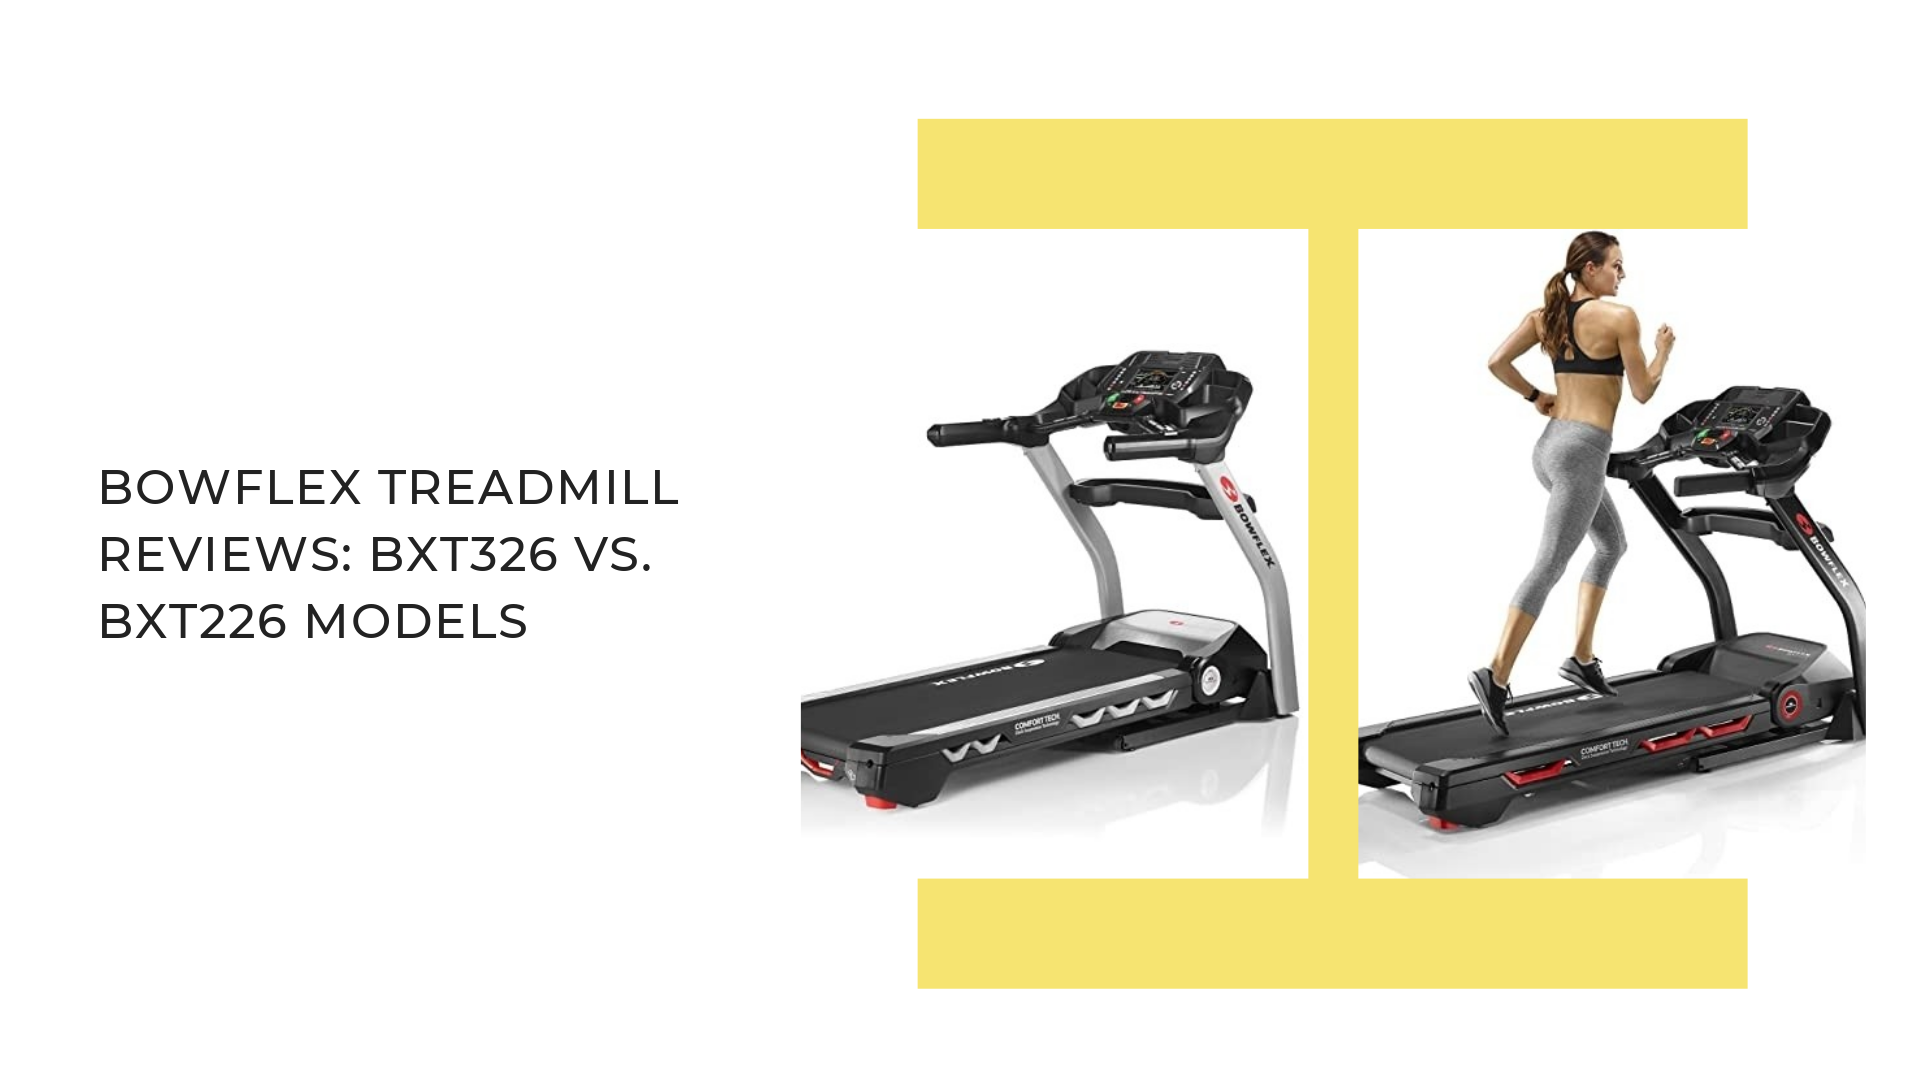 Bowflex treadmill reviews BXT326 vs BXT226 models